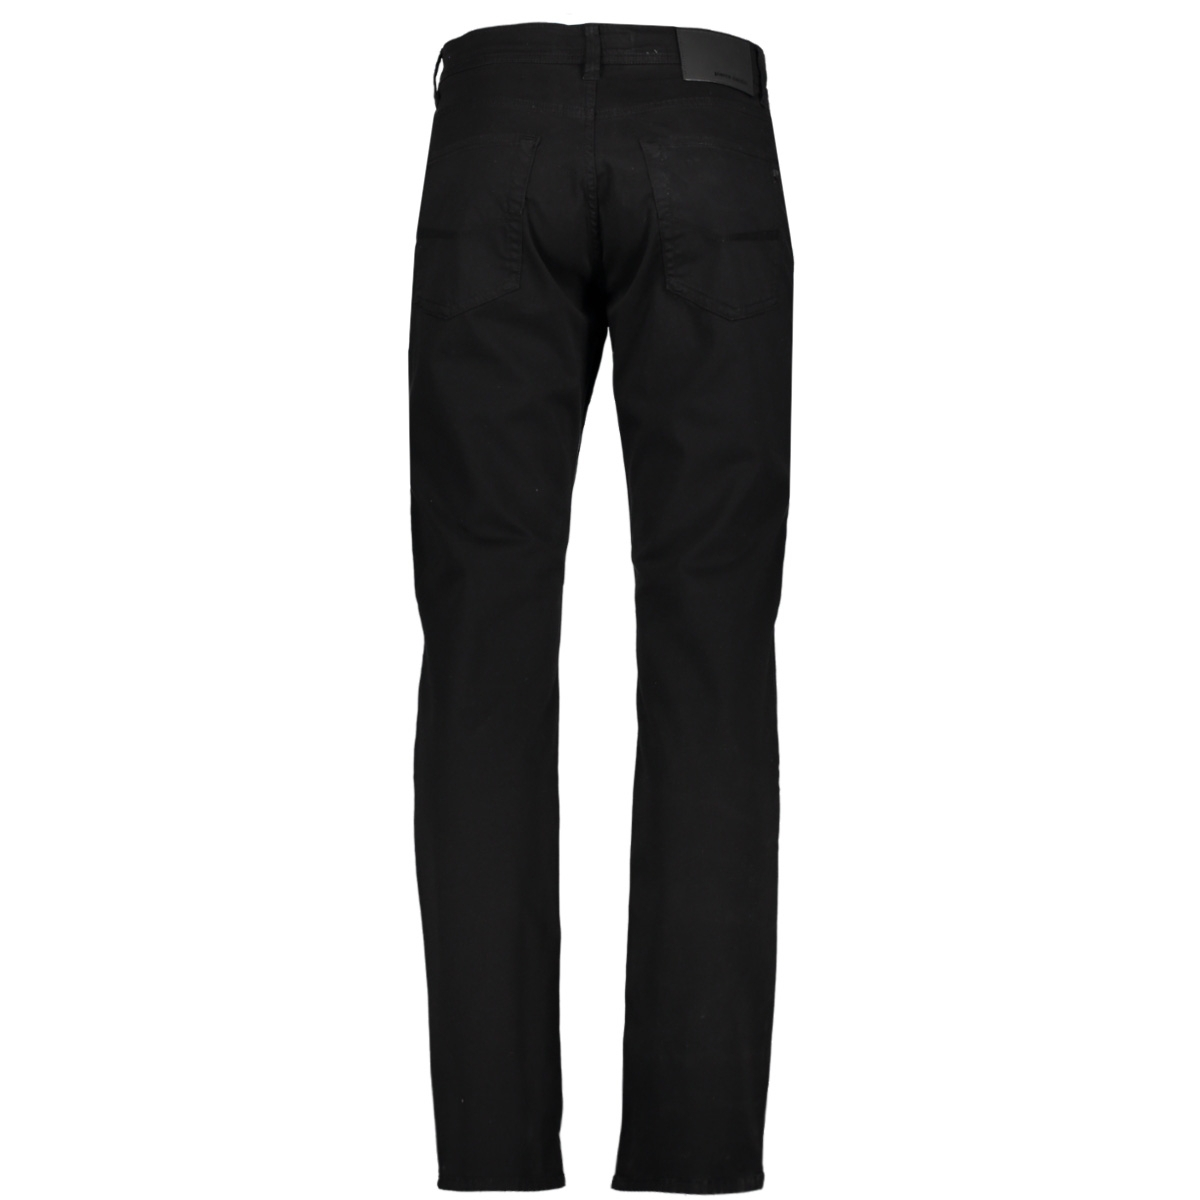 lyon tapered future flex 3451 2000 pierre cardin broek 88